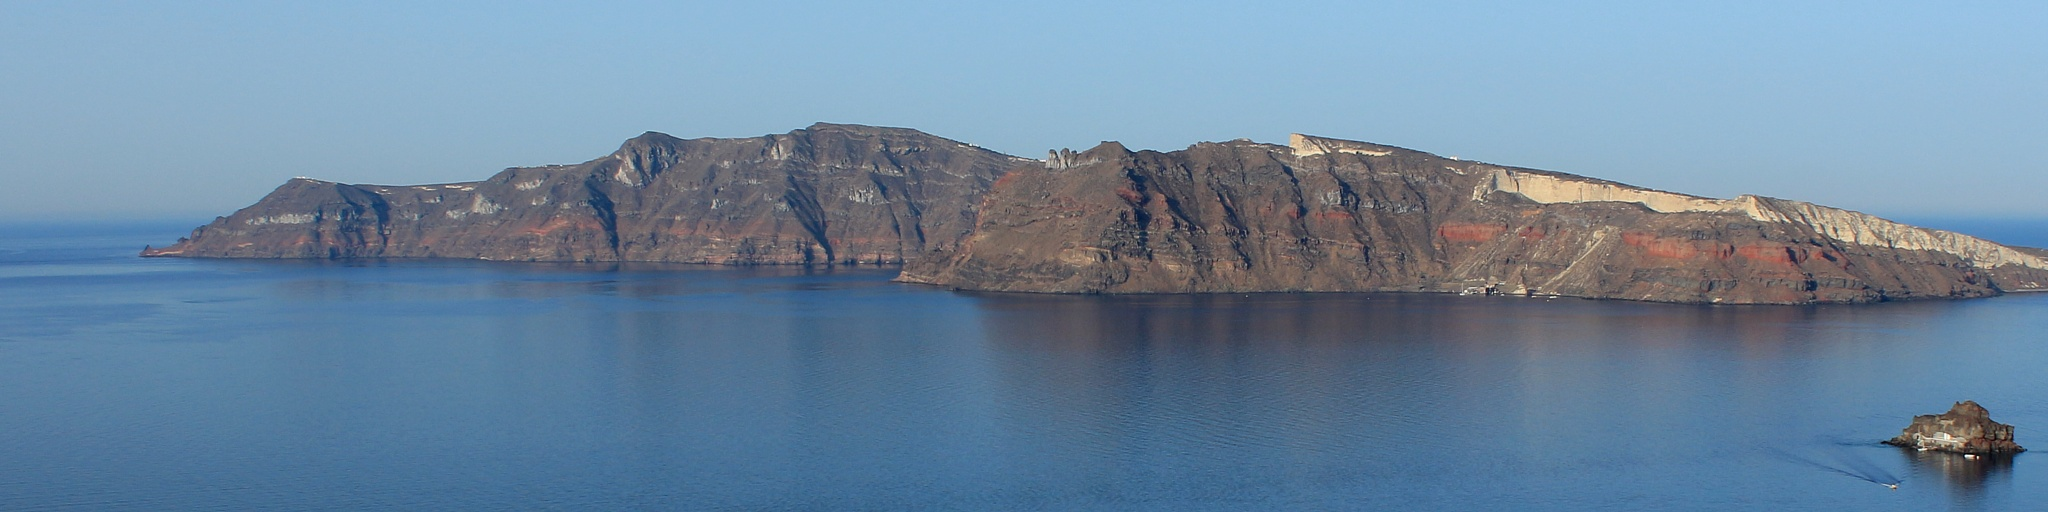 view from Oia, Santorini by katze